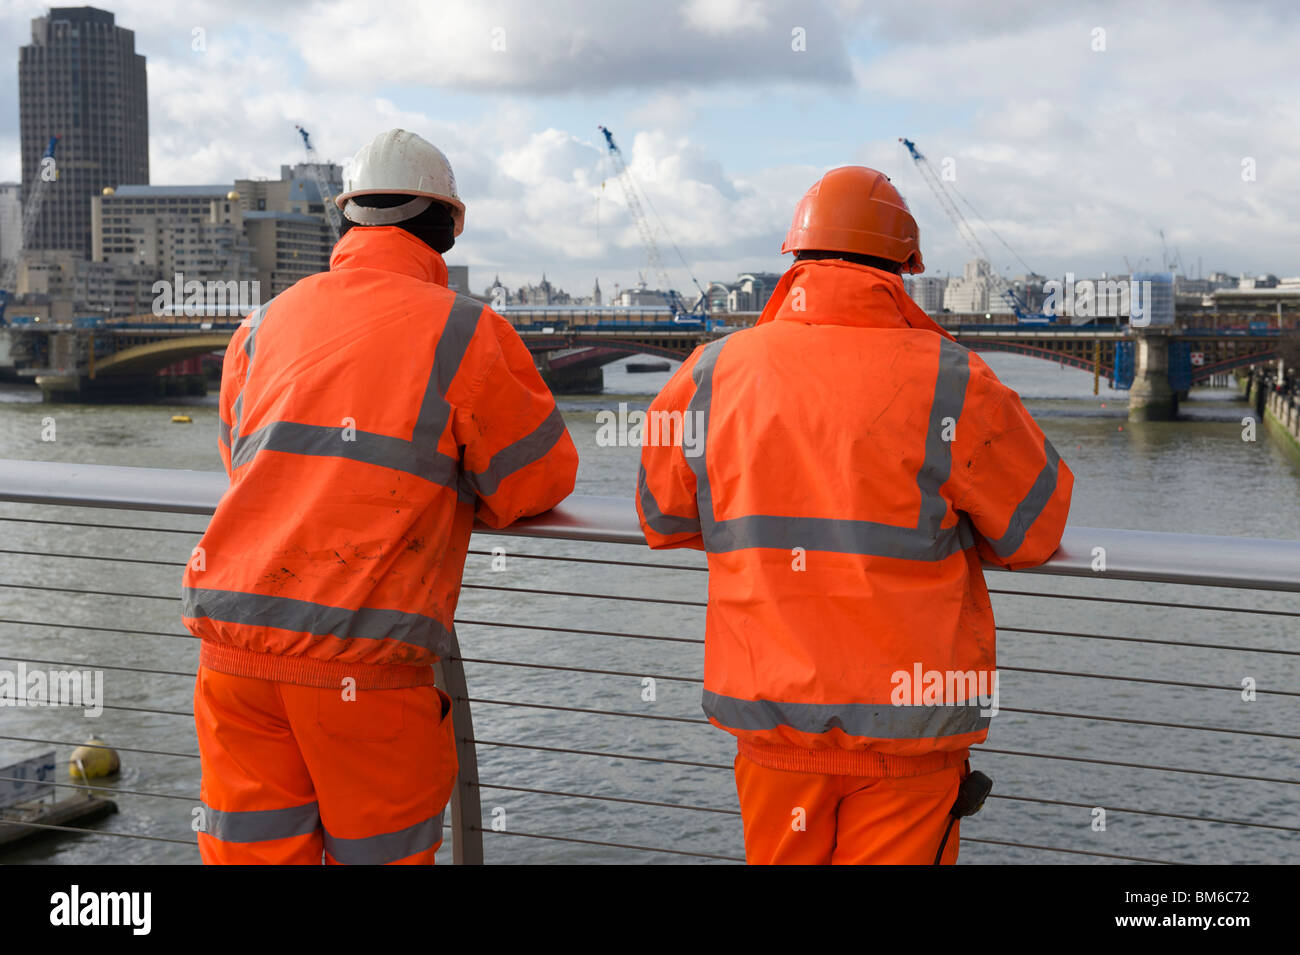 Two workmen in orange high visibility jackets - Stock Image